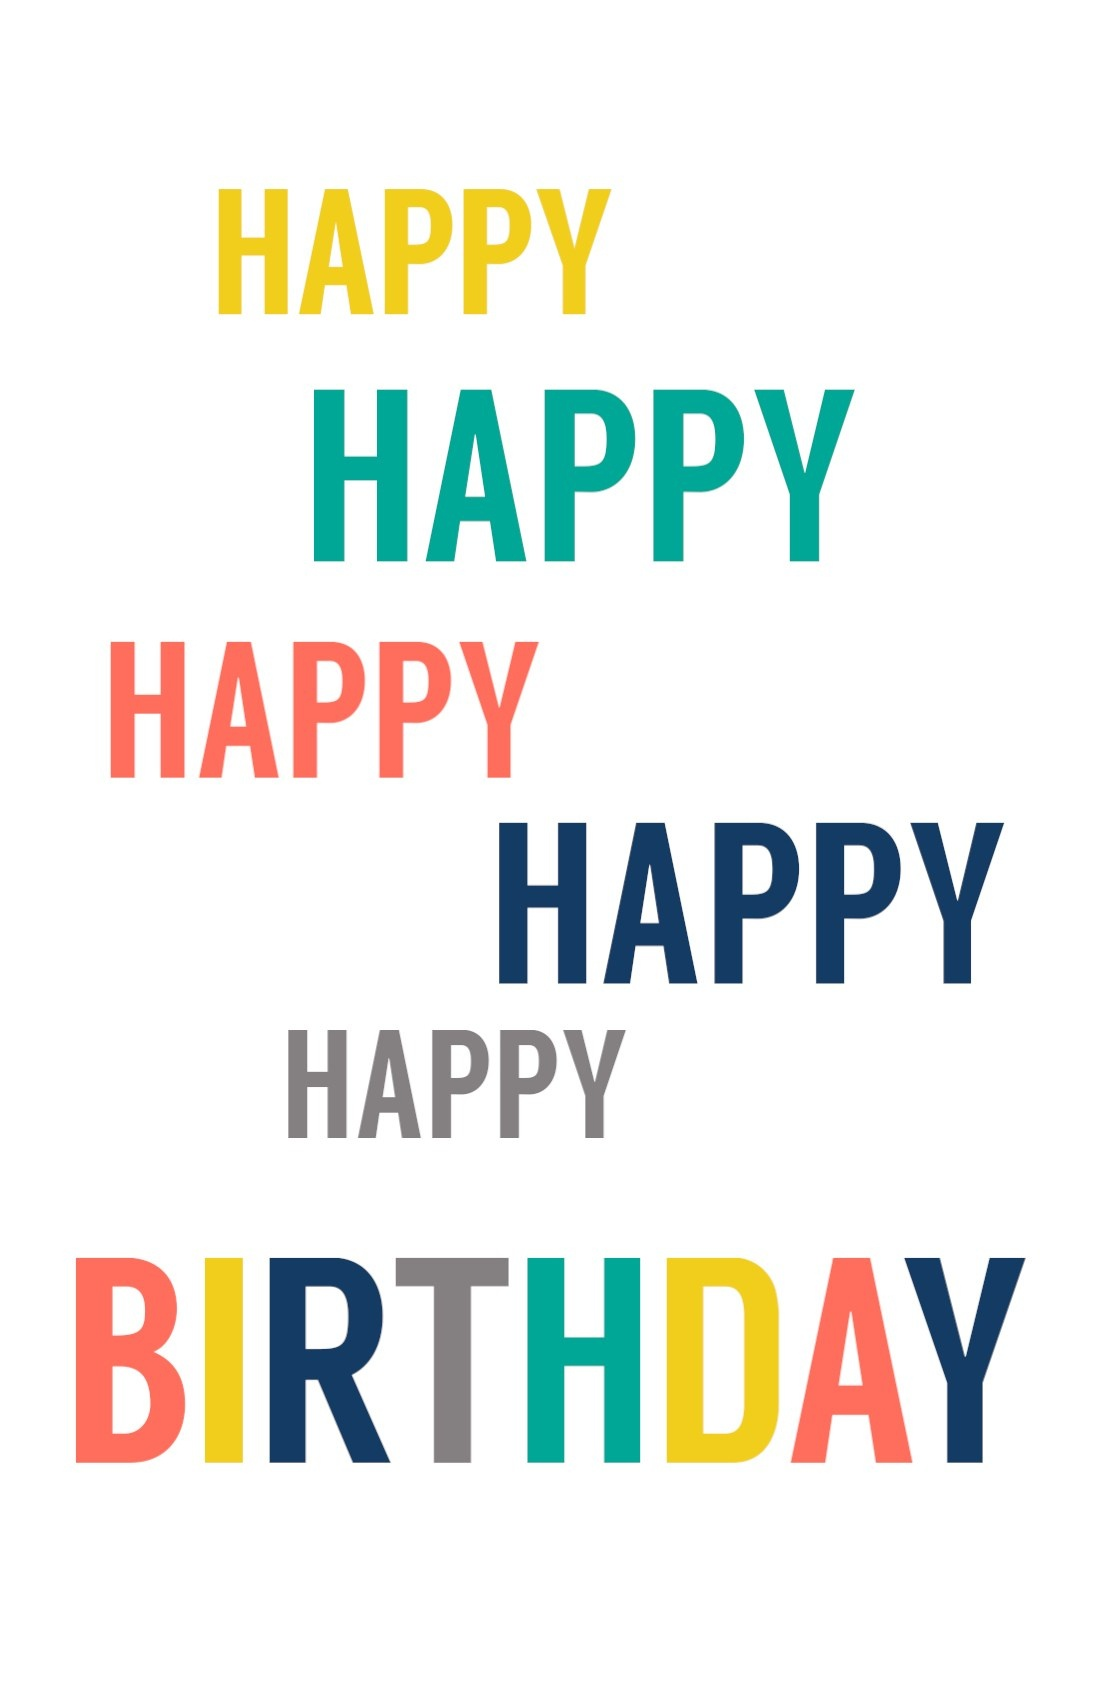 Free Printable Birthday Cards - Paper Trail Design - Happy Birthday Free Printable